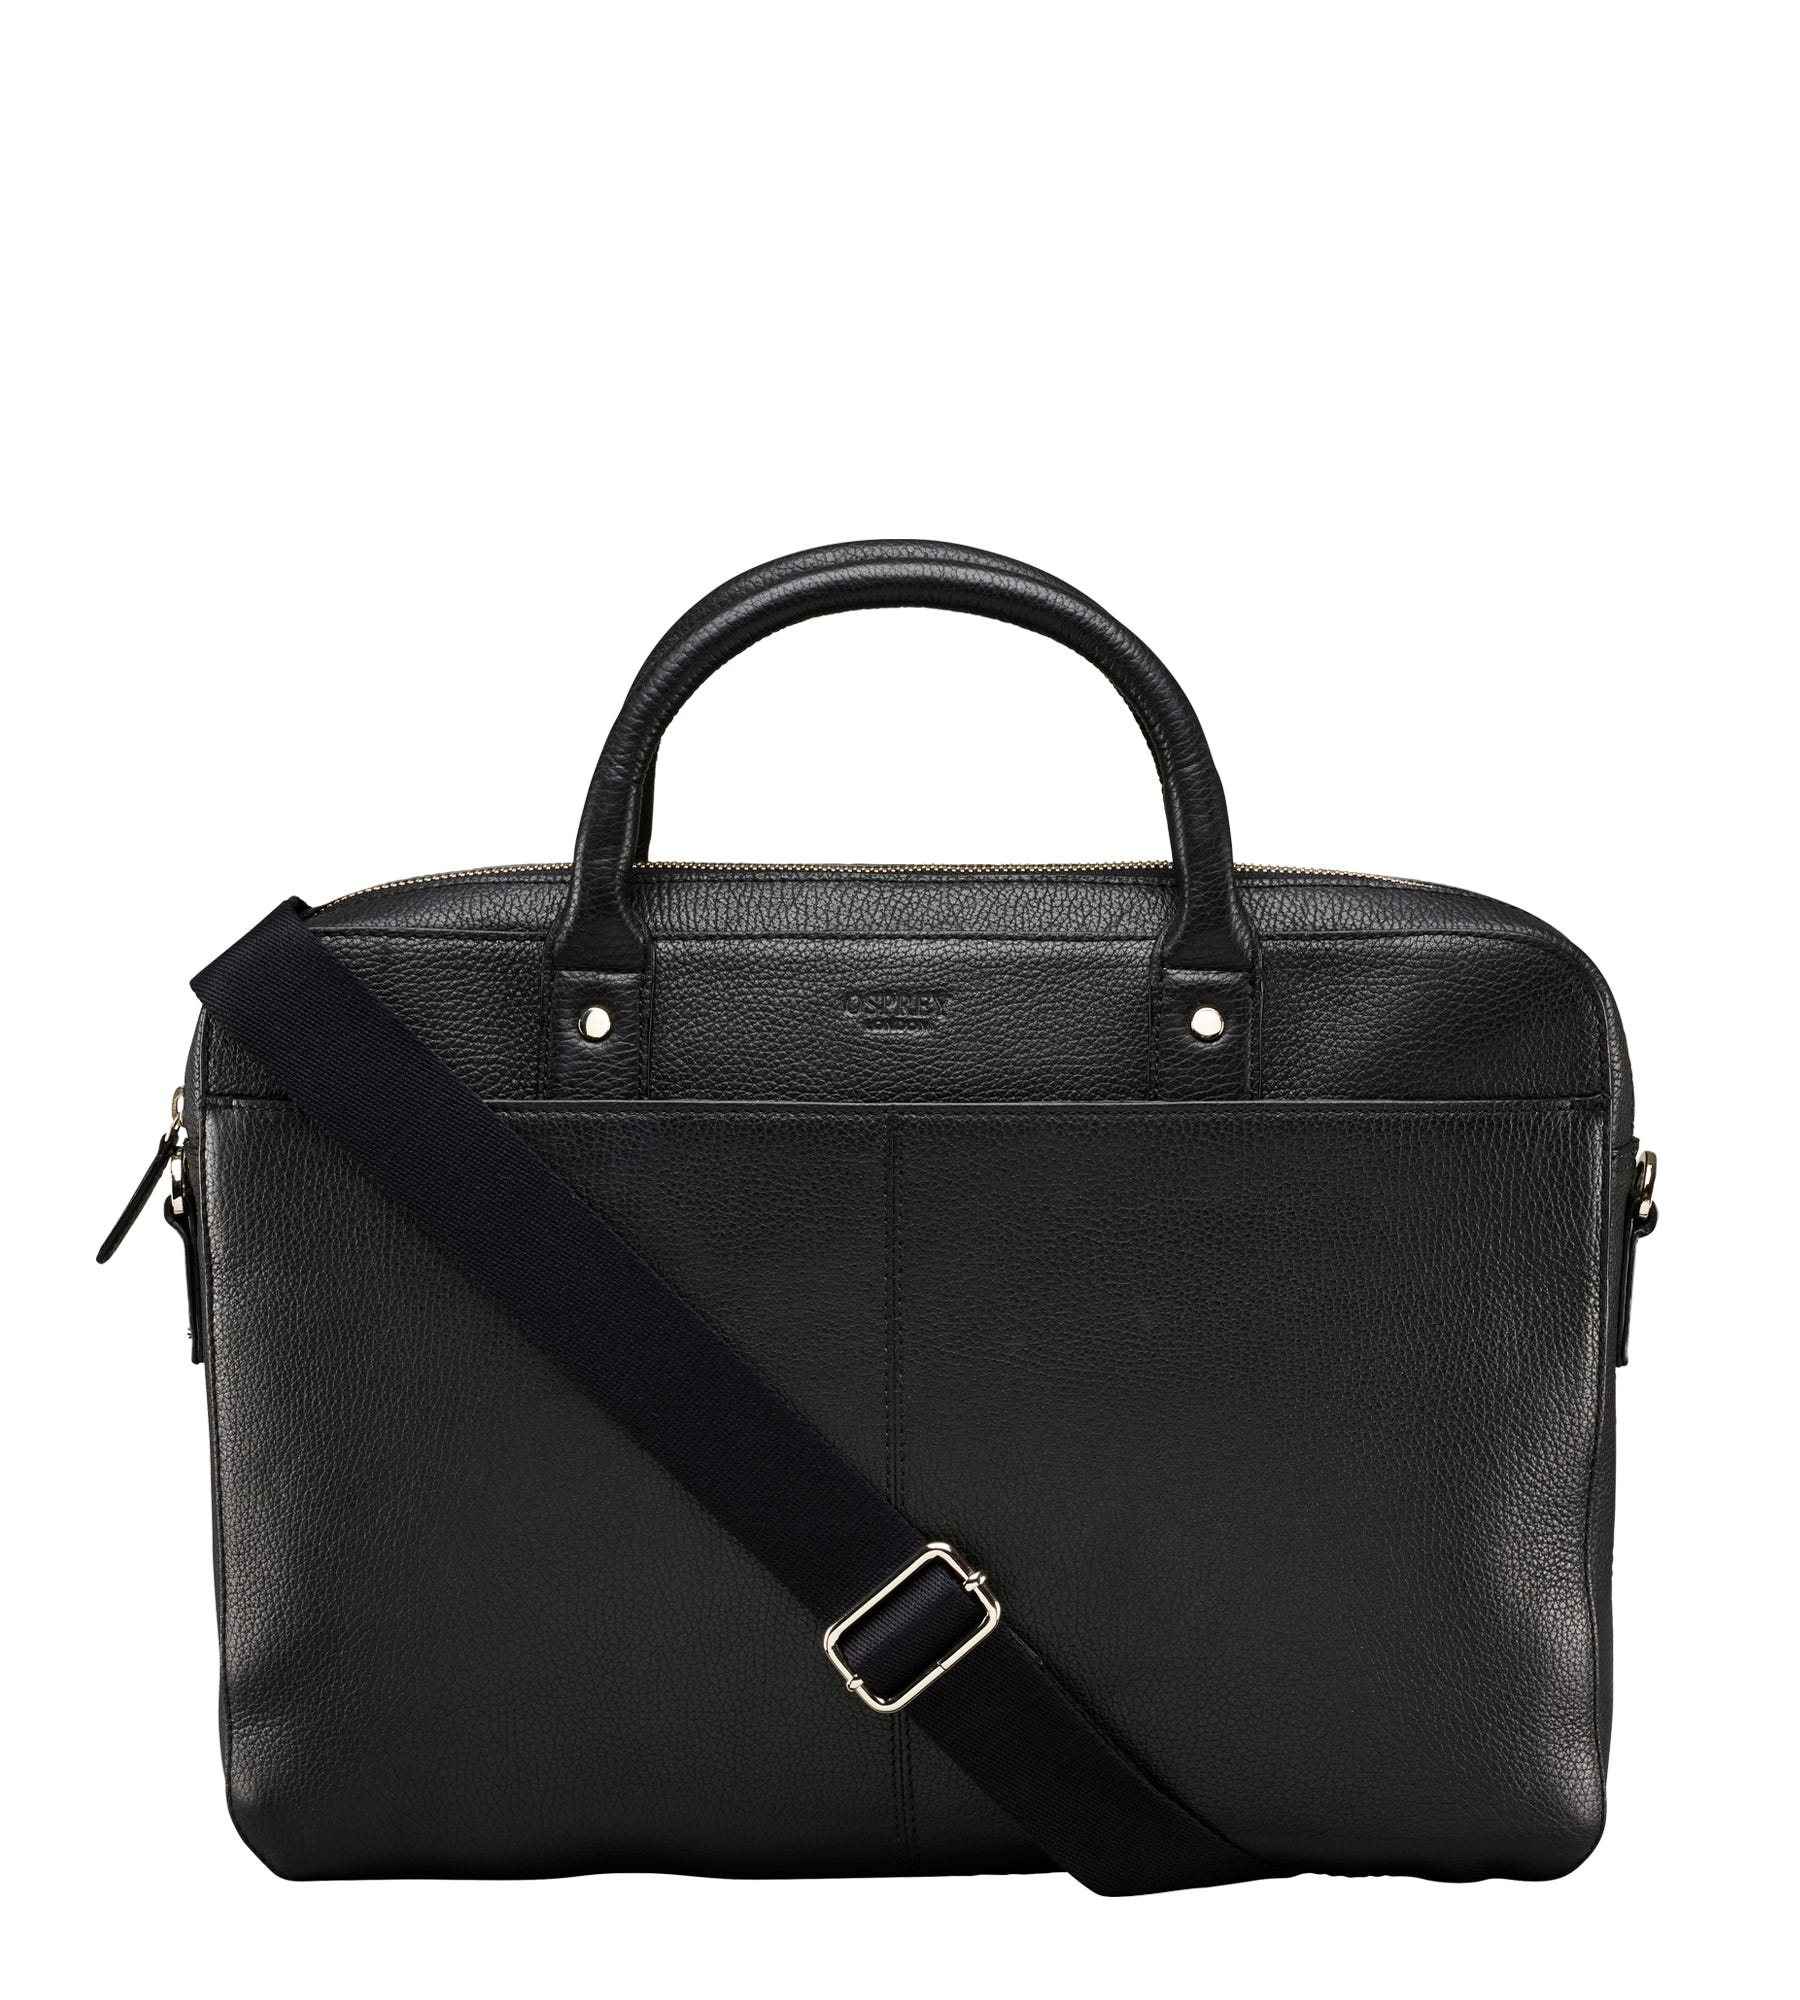 An image of The Jacob Leather Laptop Bag